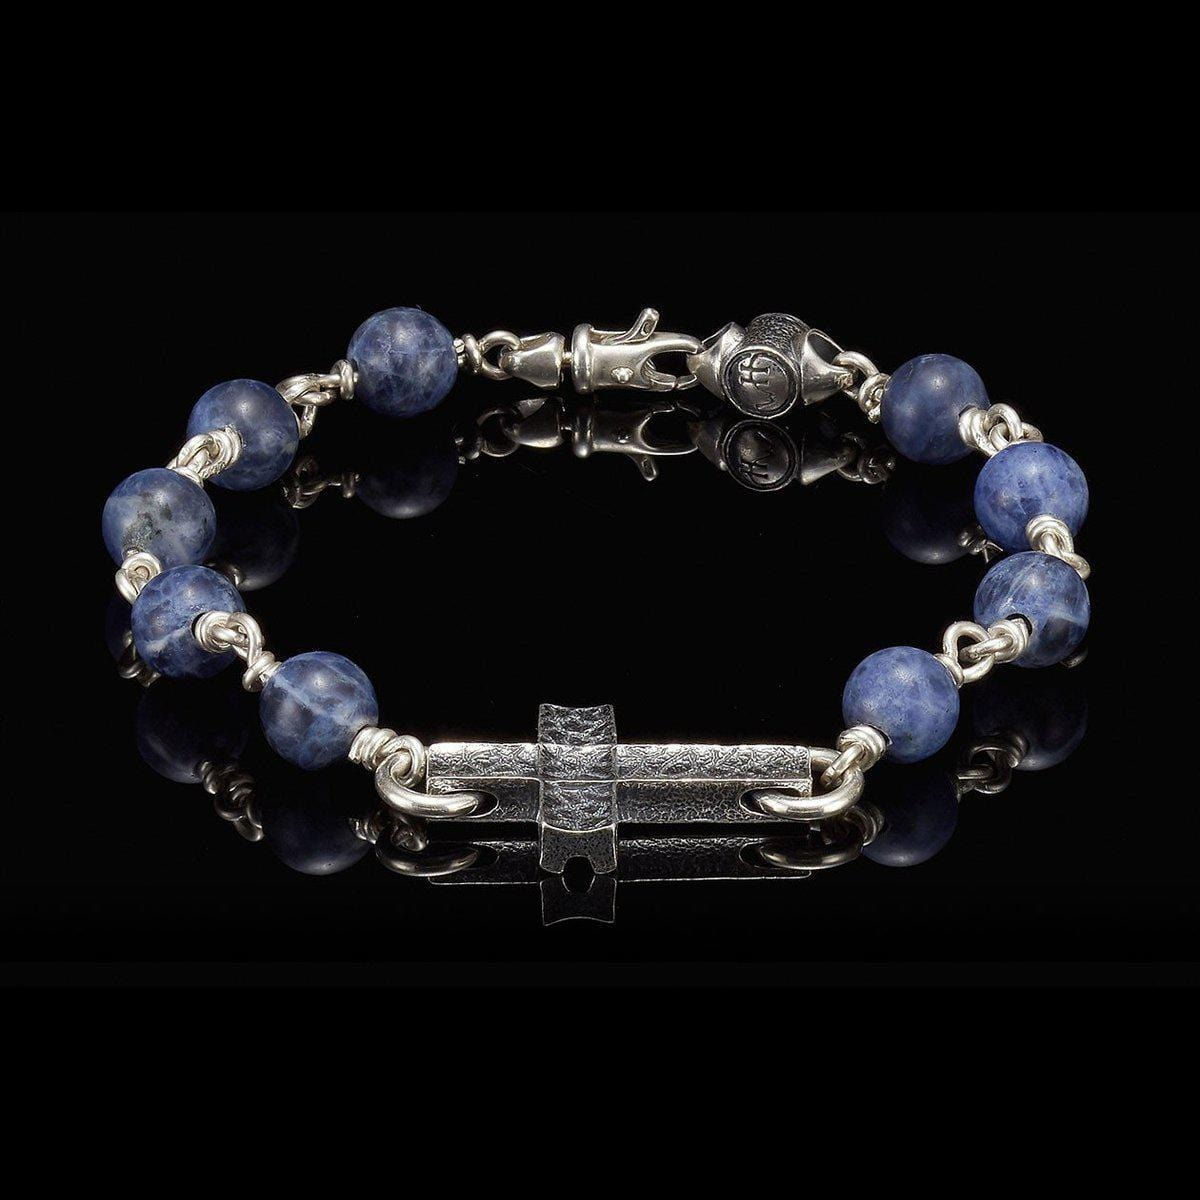 Men's Sodalite Sanctum Bracelet - BB21 SOD-William Henry-Renee Taylor Gallery